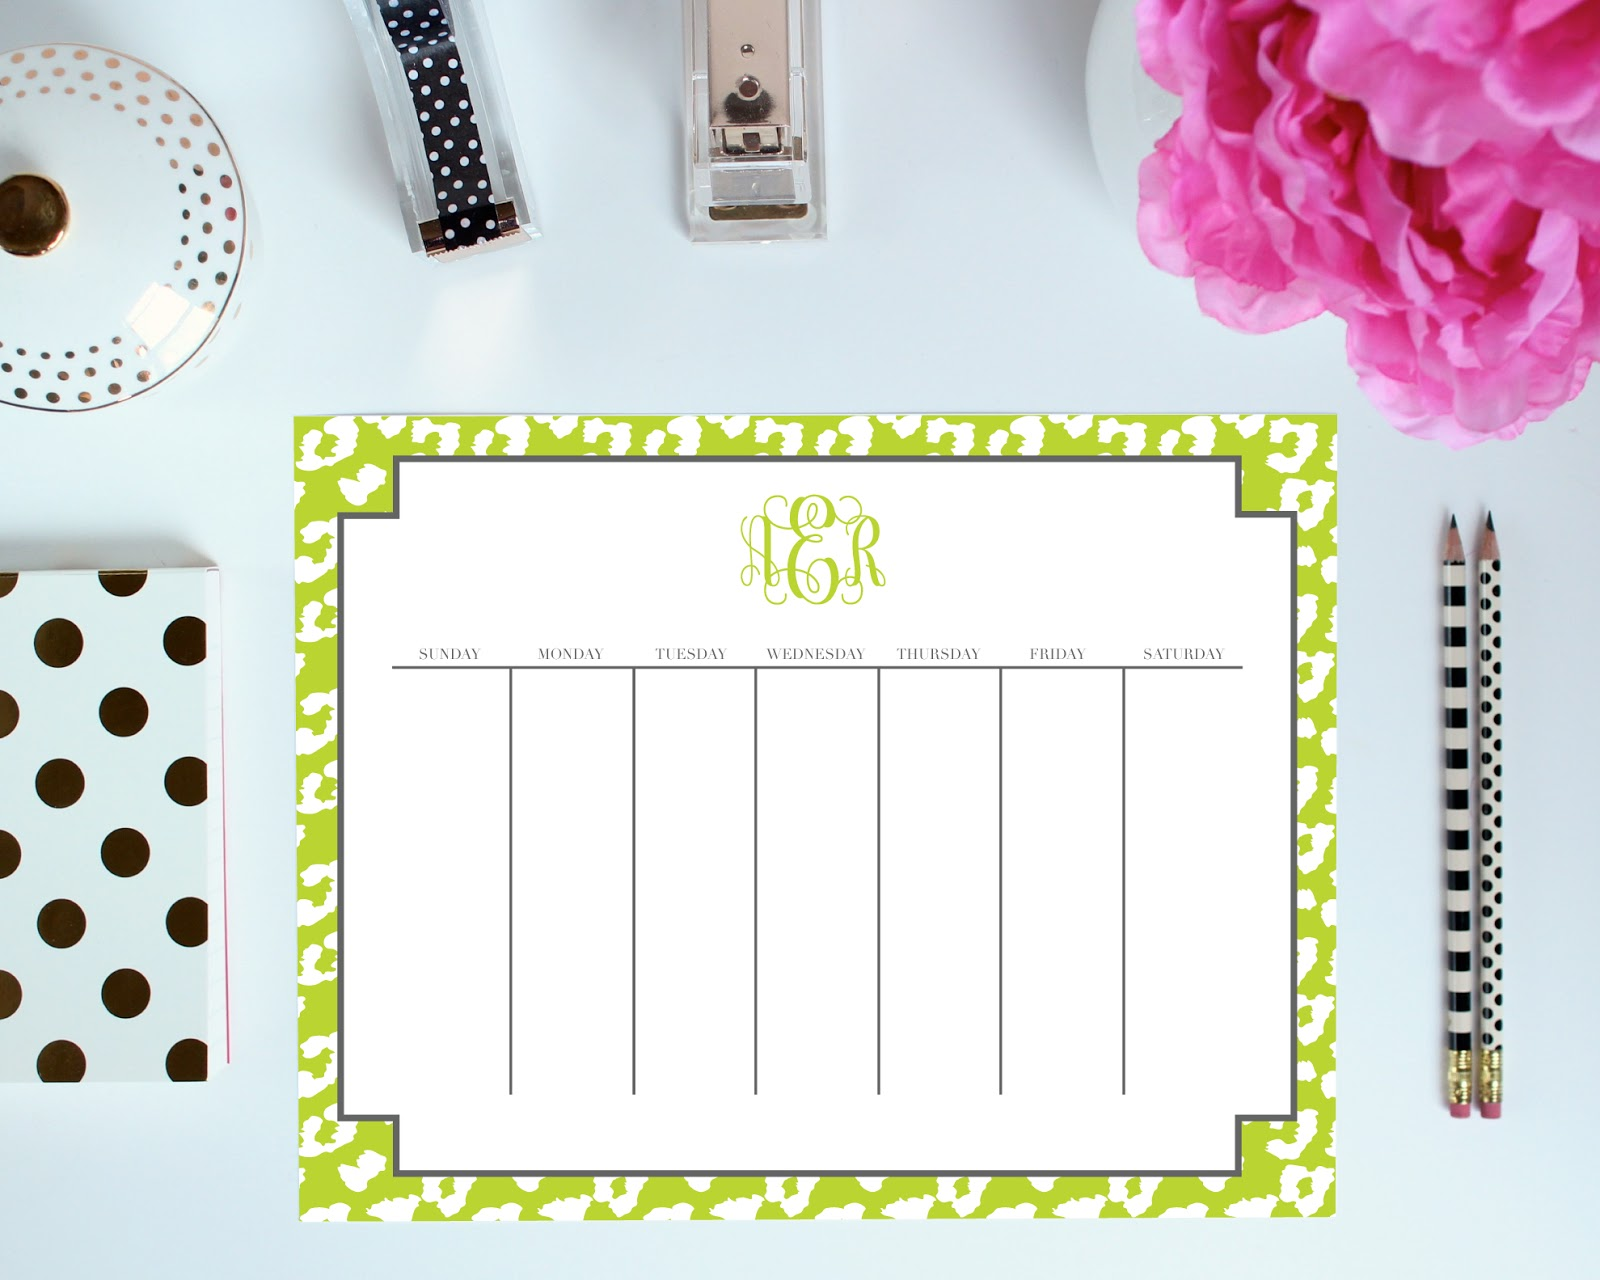 Weekly Layout - Printable Organization Pages can be customized with your monogram. You pick the colors, frame, font, and more!